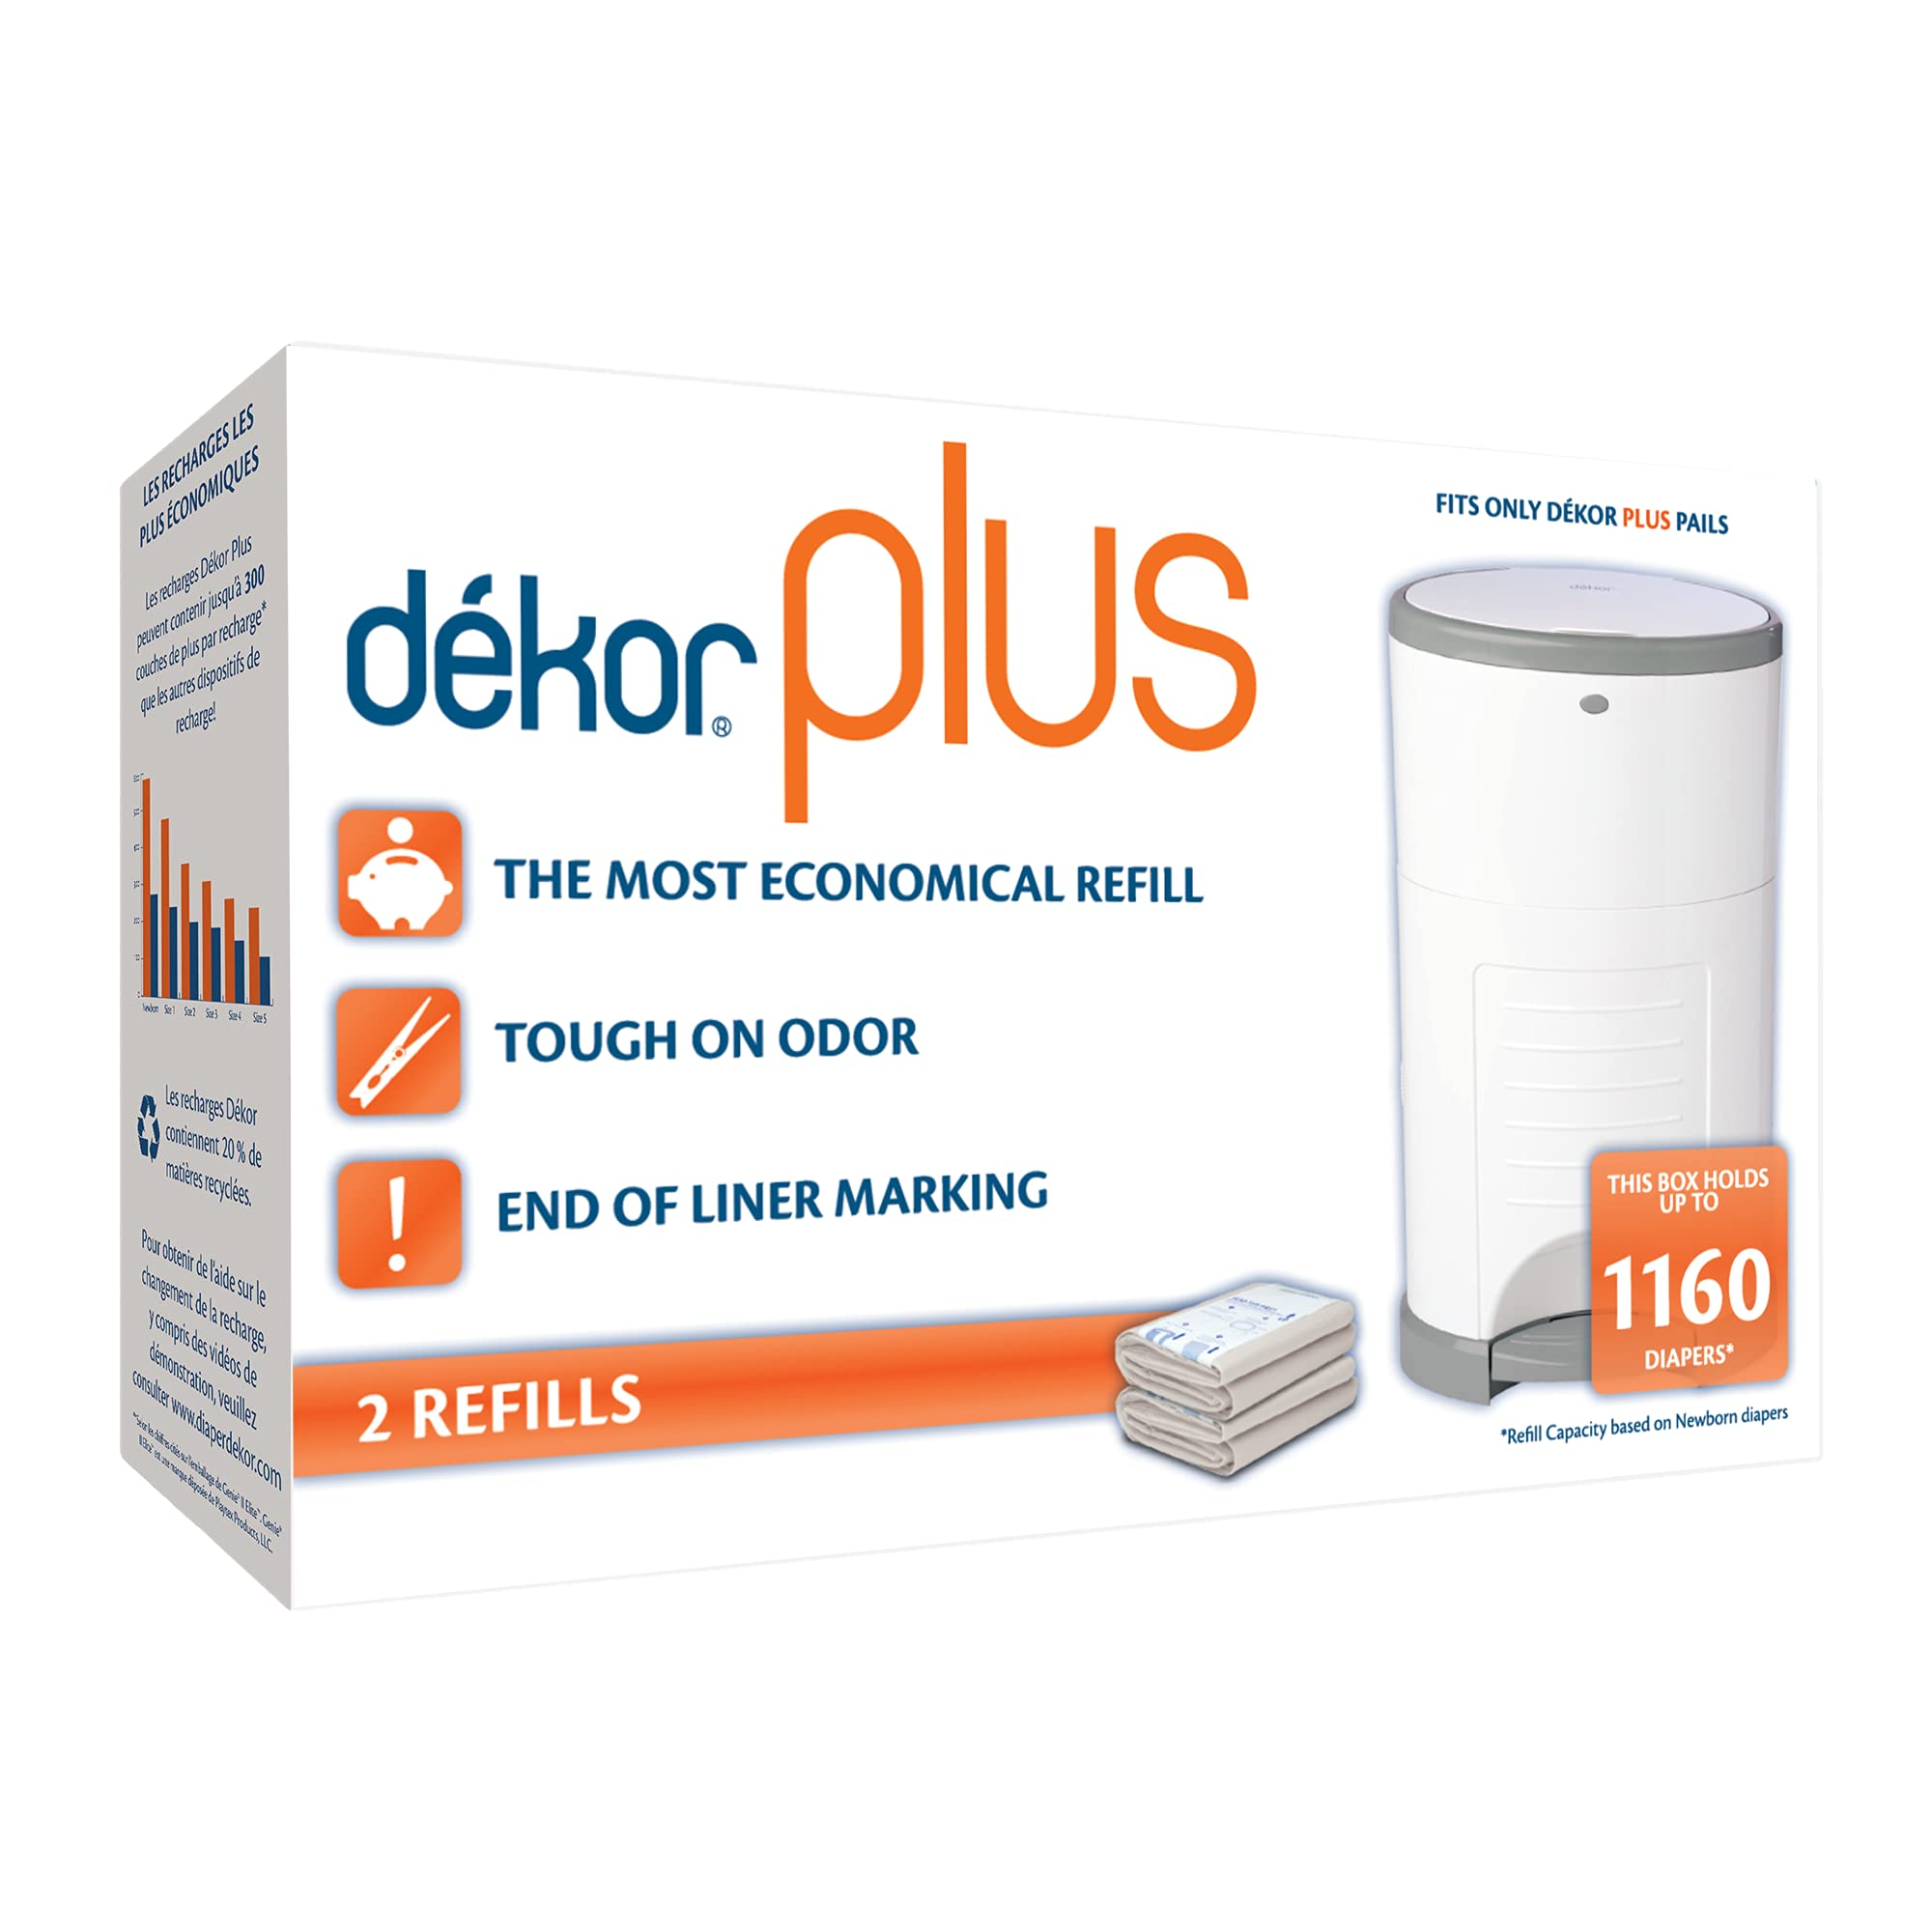 Dekor Plus Diaper Pail Refills | 2 Count | Most Economical Refill System | Quick & Easy to Replace | No Preset Bag Size – Use Only What You Need | Exclusive End-of-Liner Marking | Baby Powder Scent